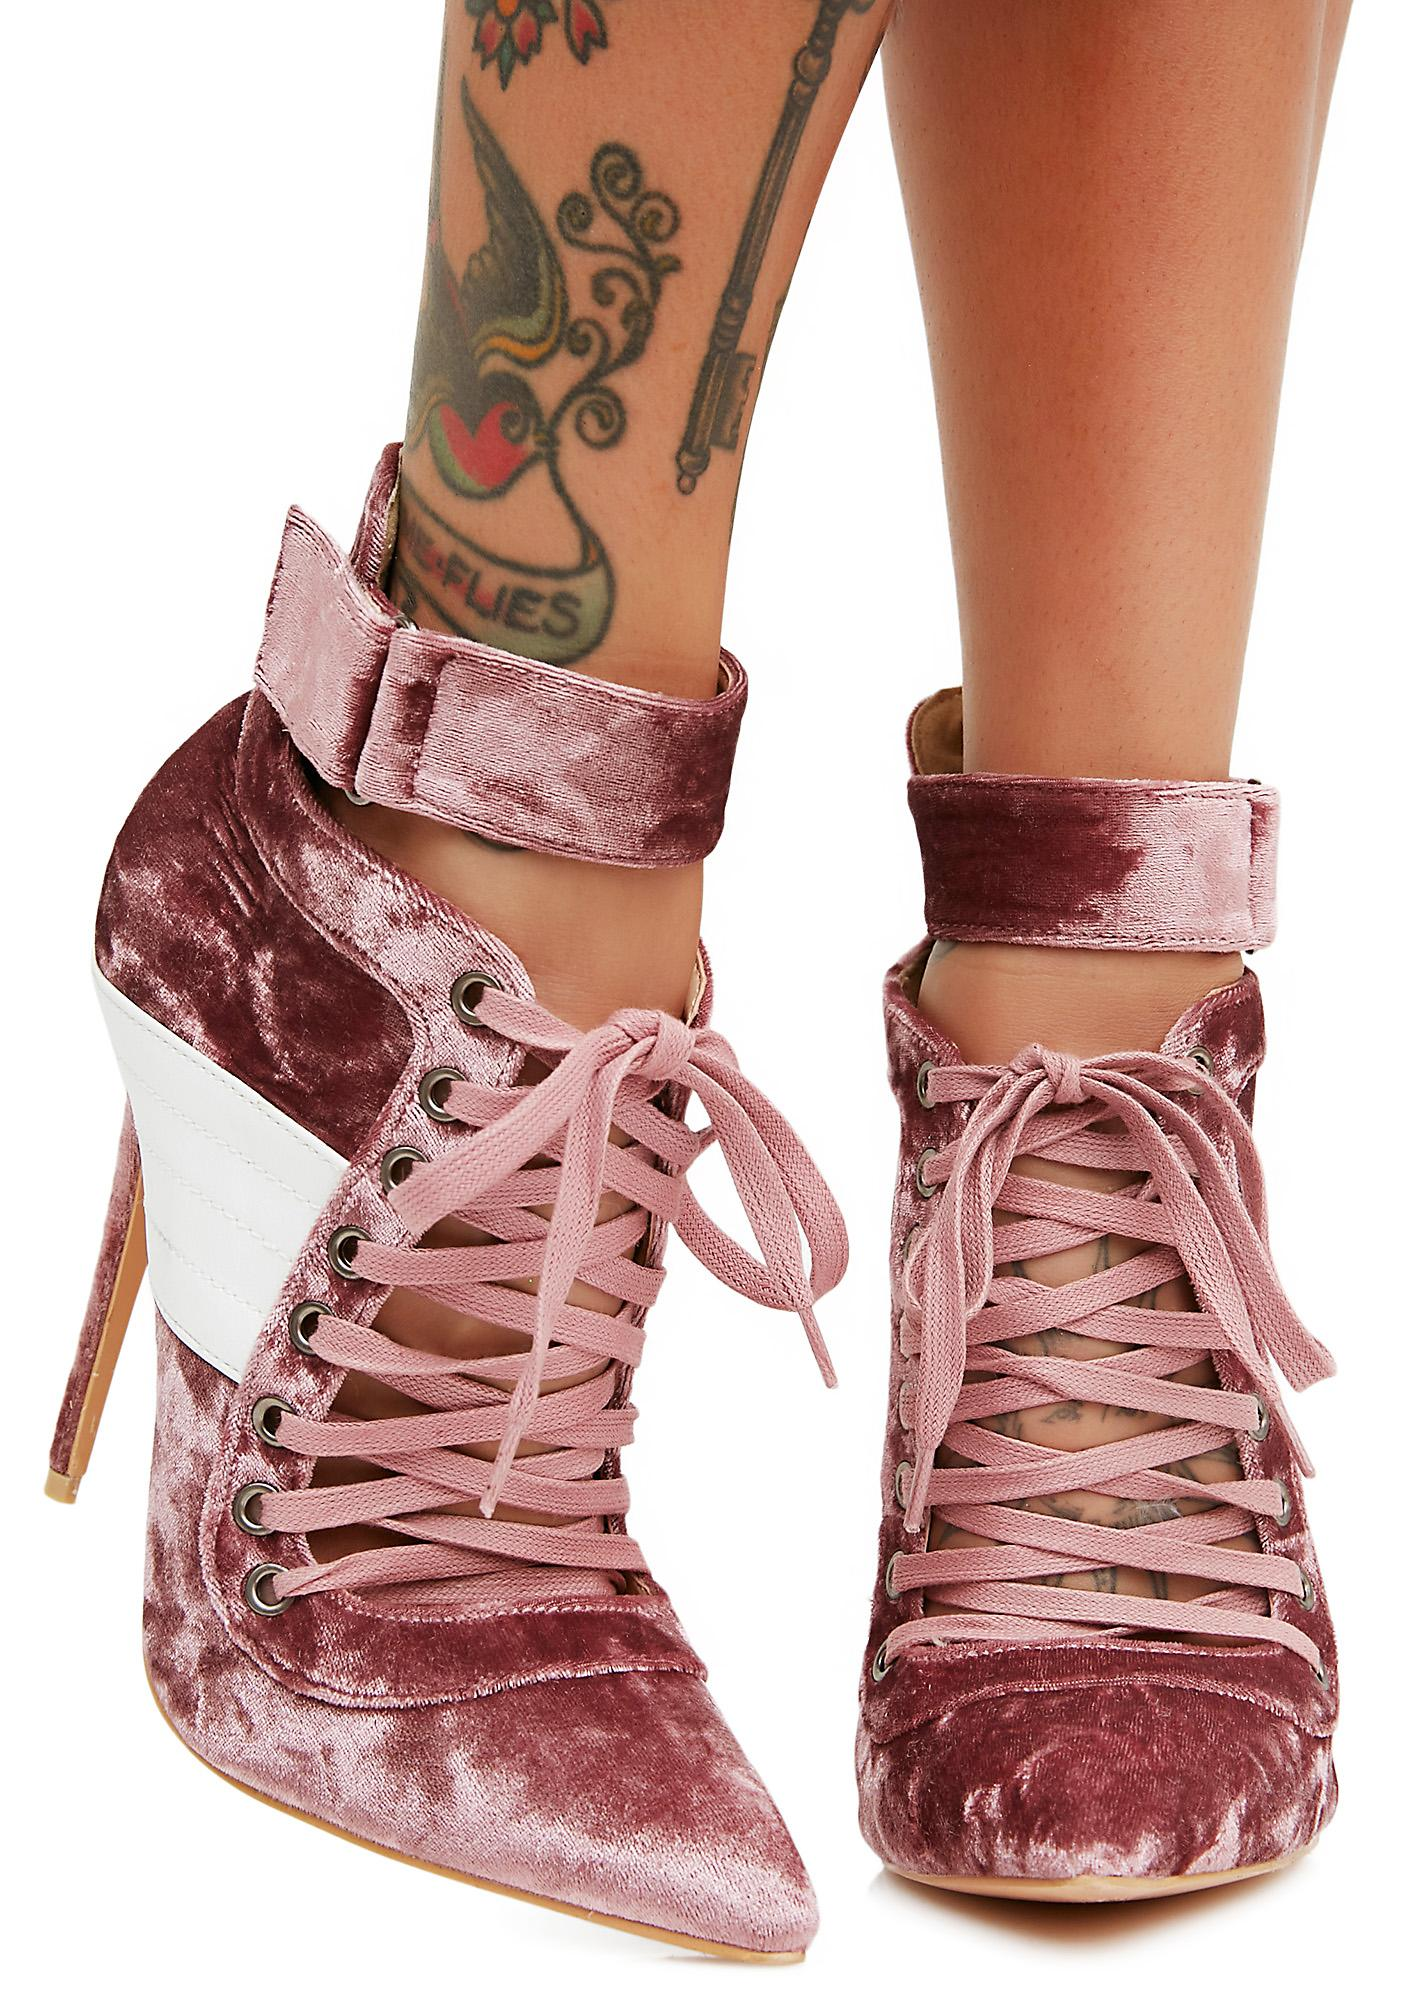 Public Desire Rose Fifi Lace Up Stiletto Ankle Boots